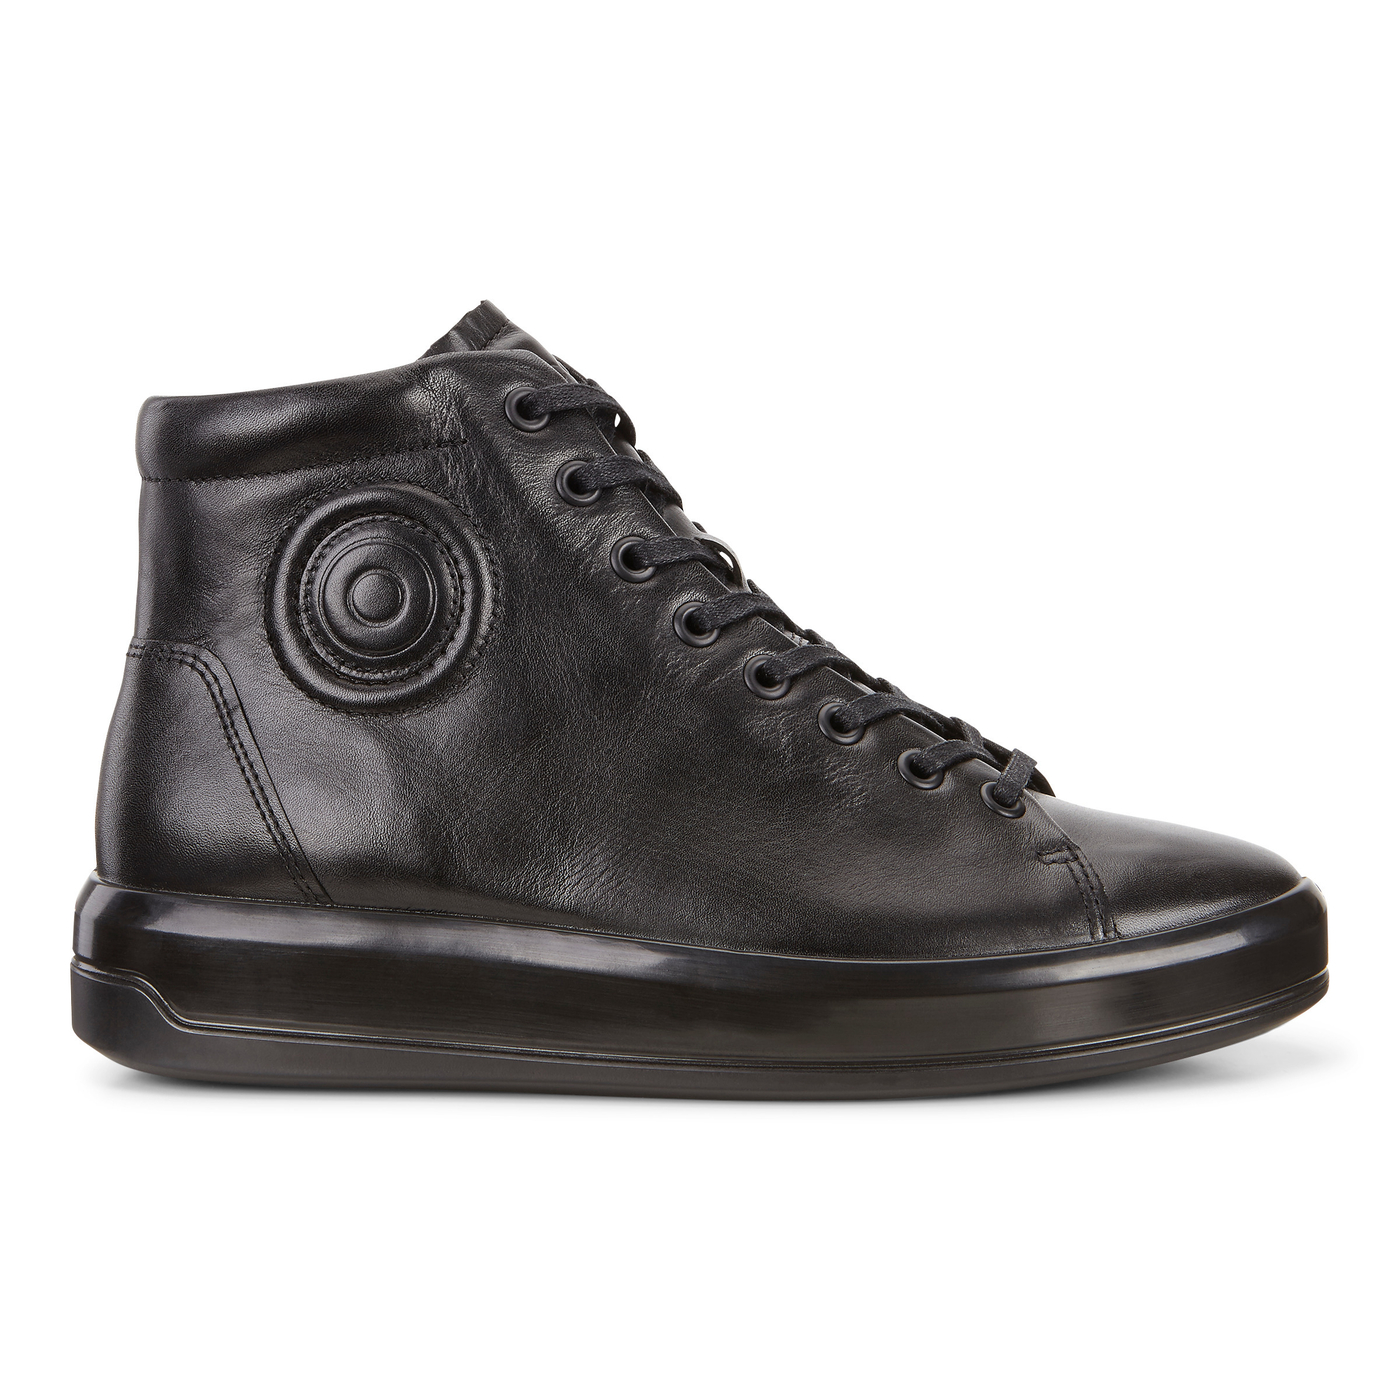 ECCO SOFT 9 Sneaker Ankle-high